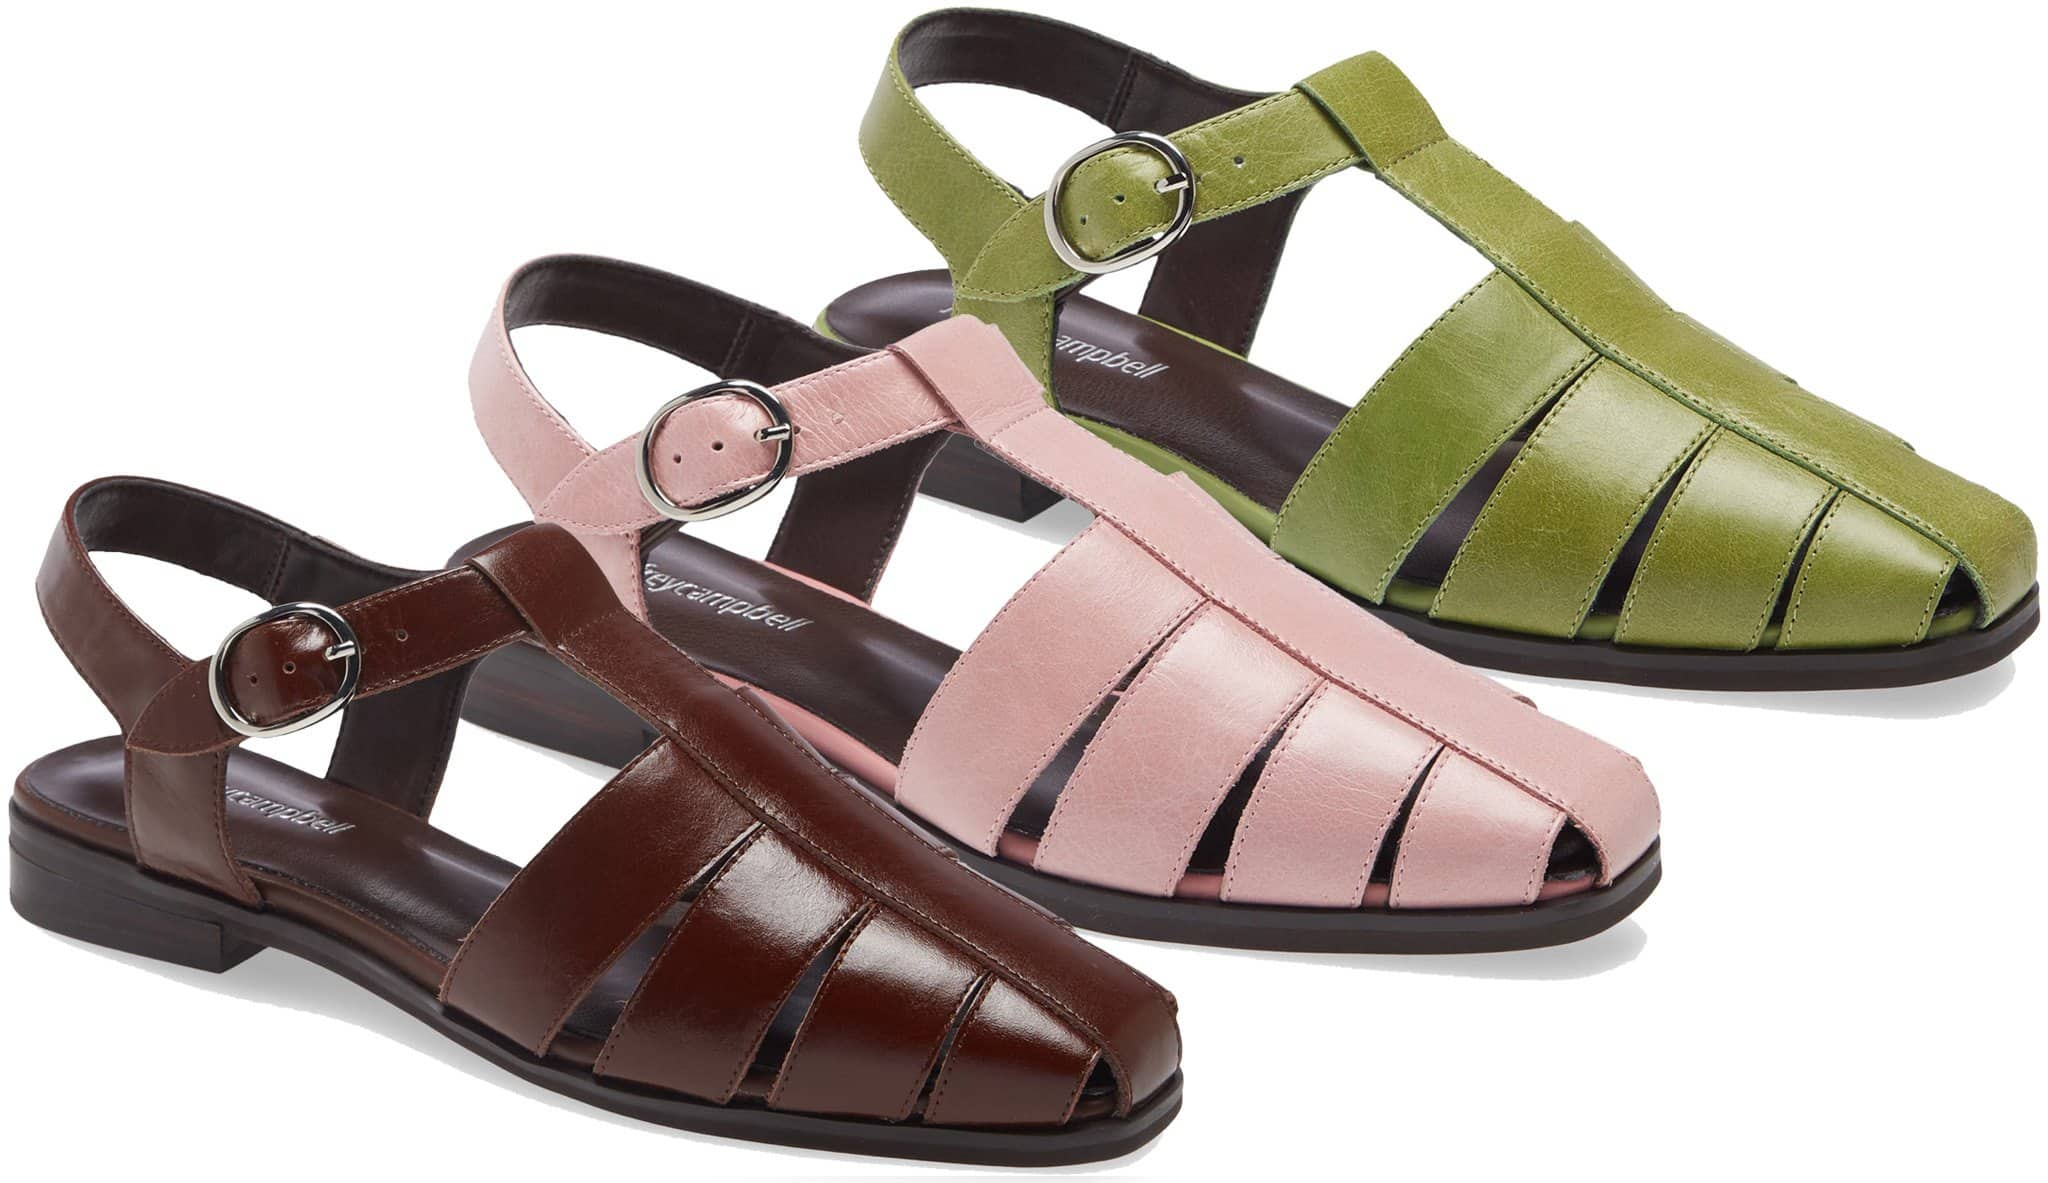 The Landen fisherman-style sandals from Jeffrey Campbell bring a retro-chic feel to any look